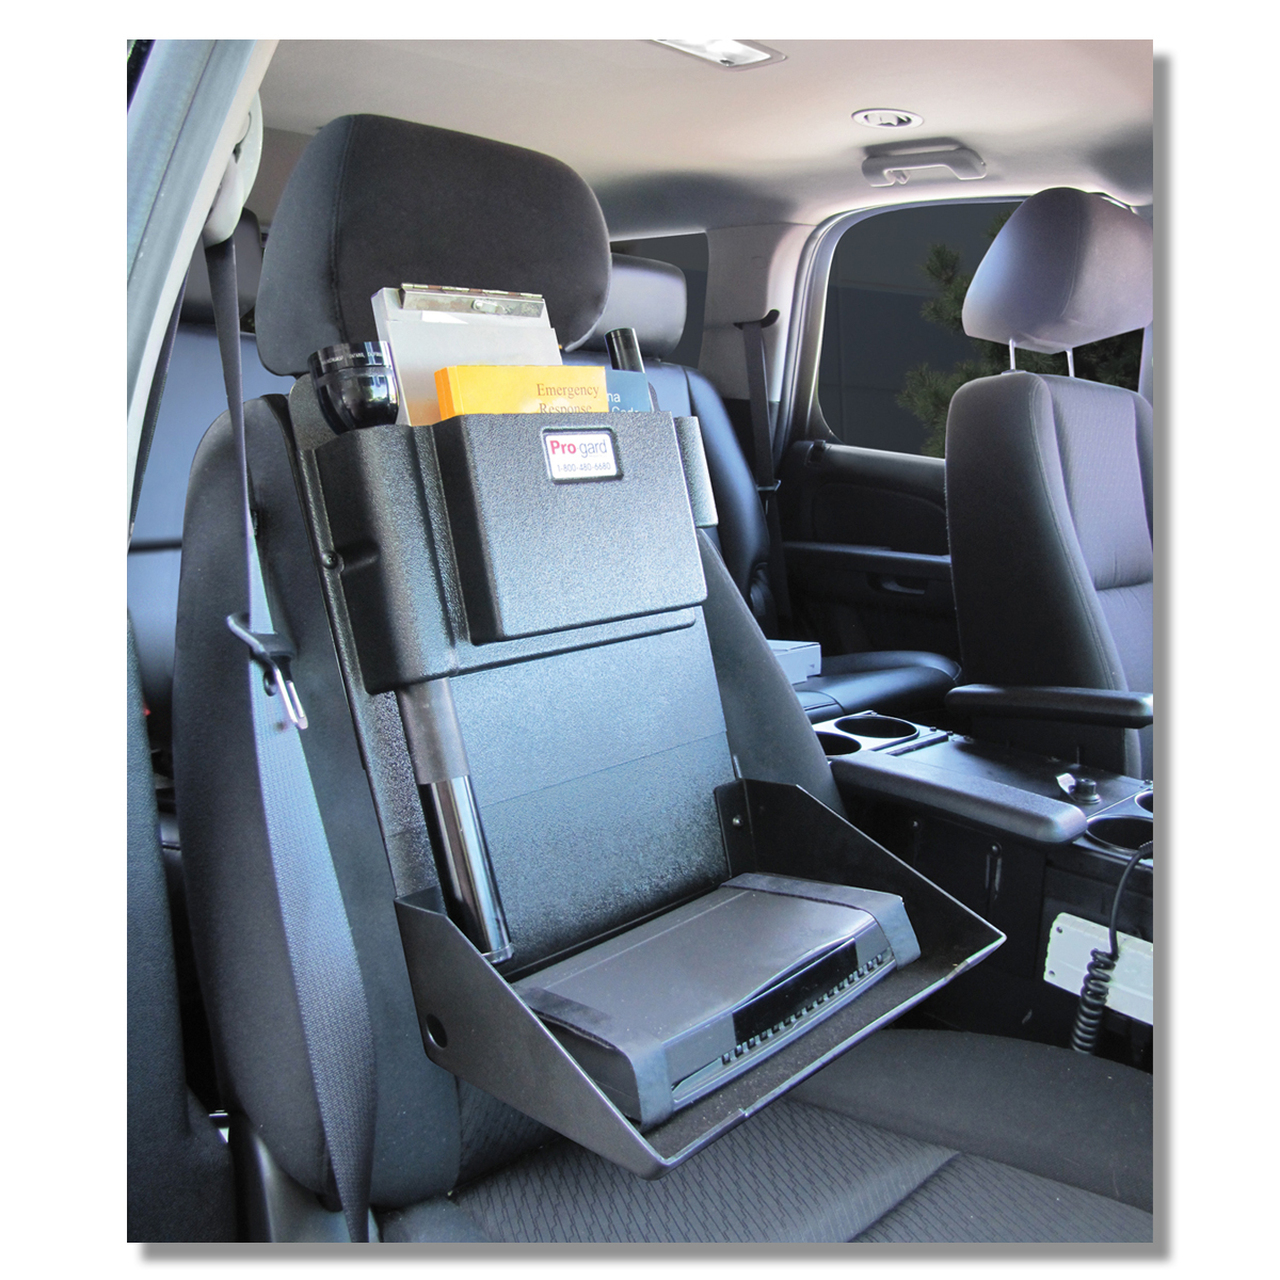 Seat Gear Organizer with Printer Holder for Police Vehicle Equipment D2951 by ProGard